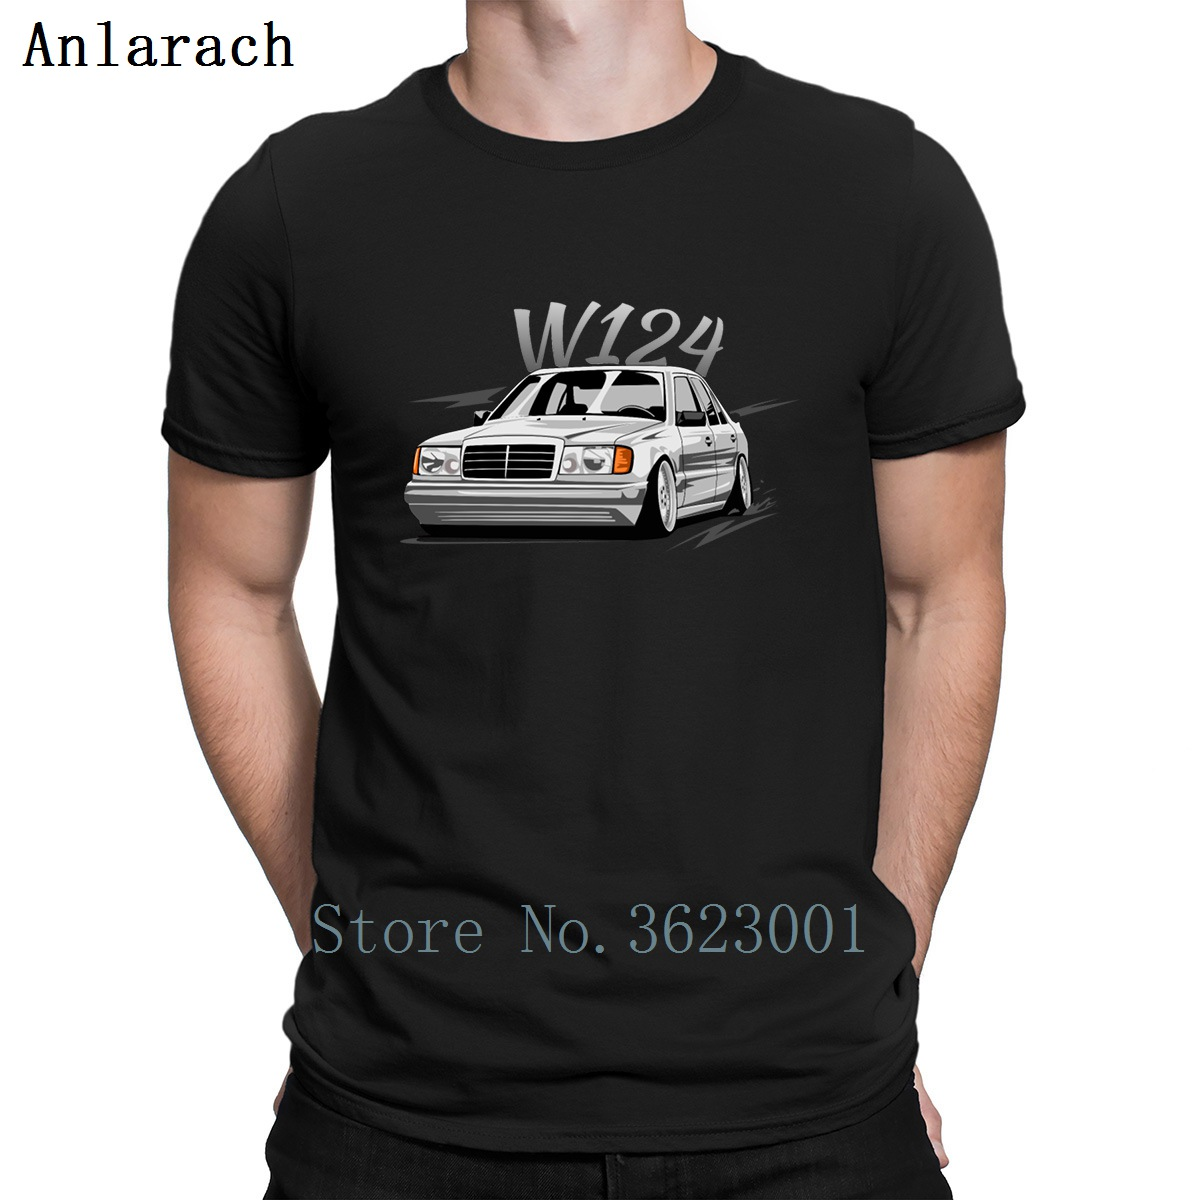 W124 T Shirt Fashion Gift Fitness Clothing Spring 2019 Tee Shirt Hilarious Cotton Letters Personality